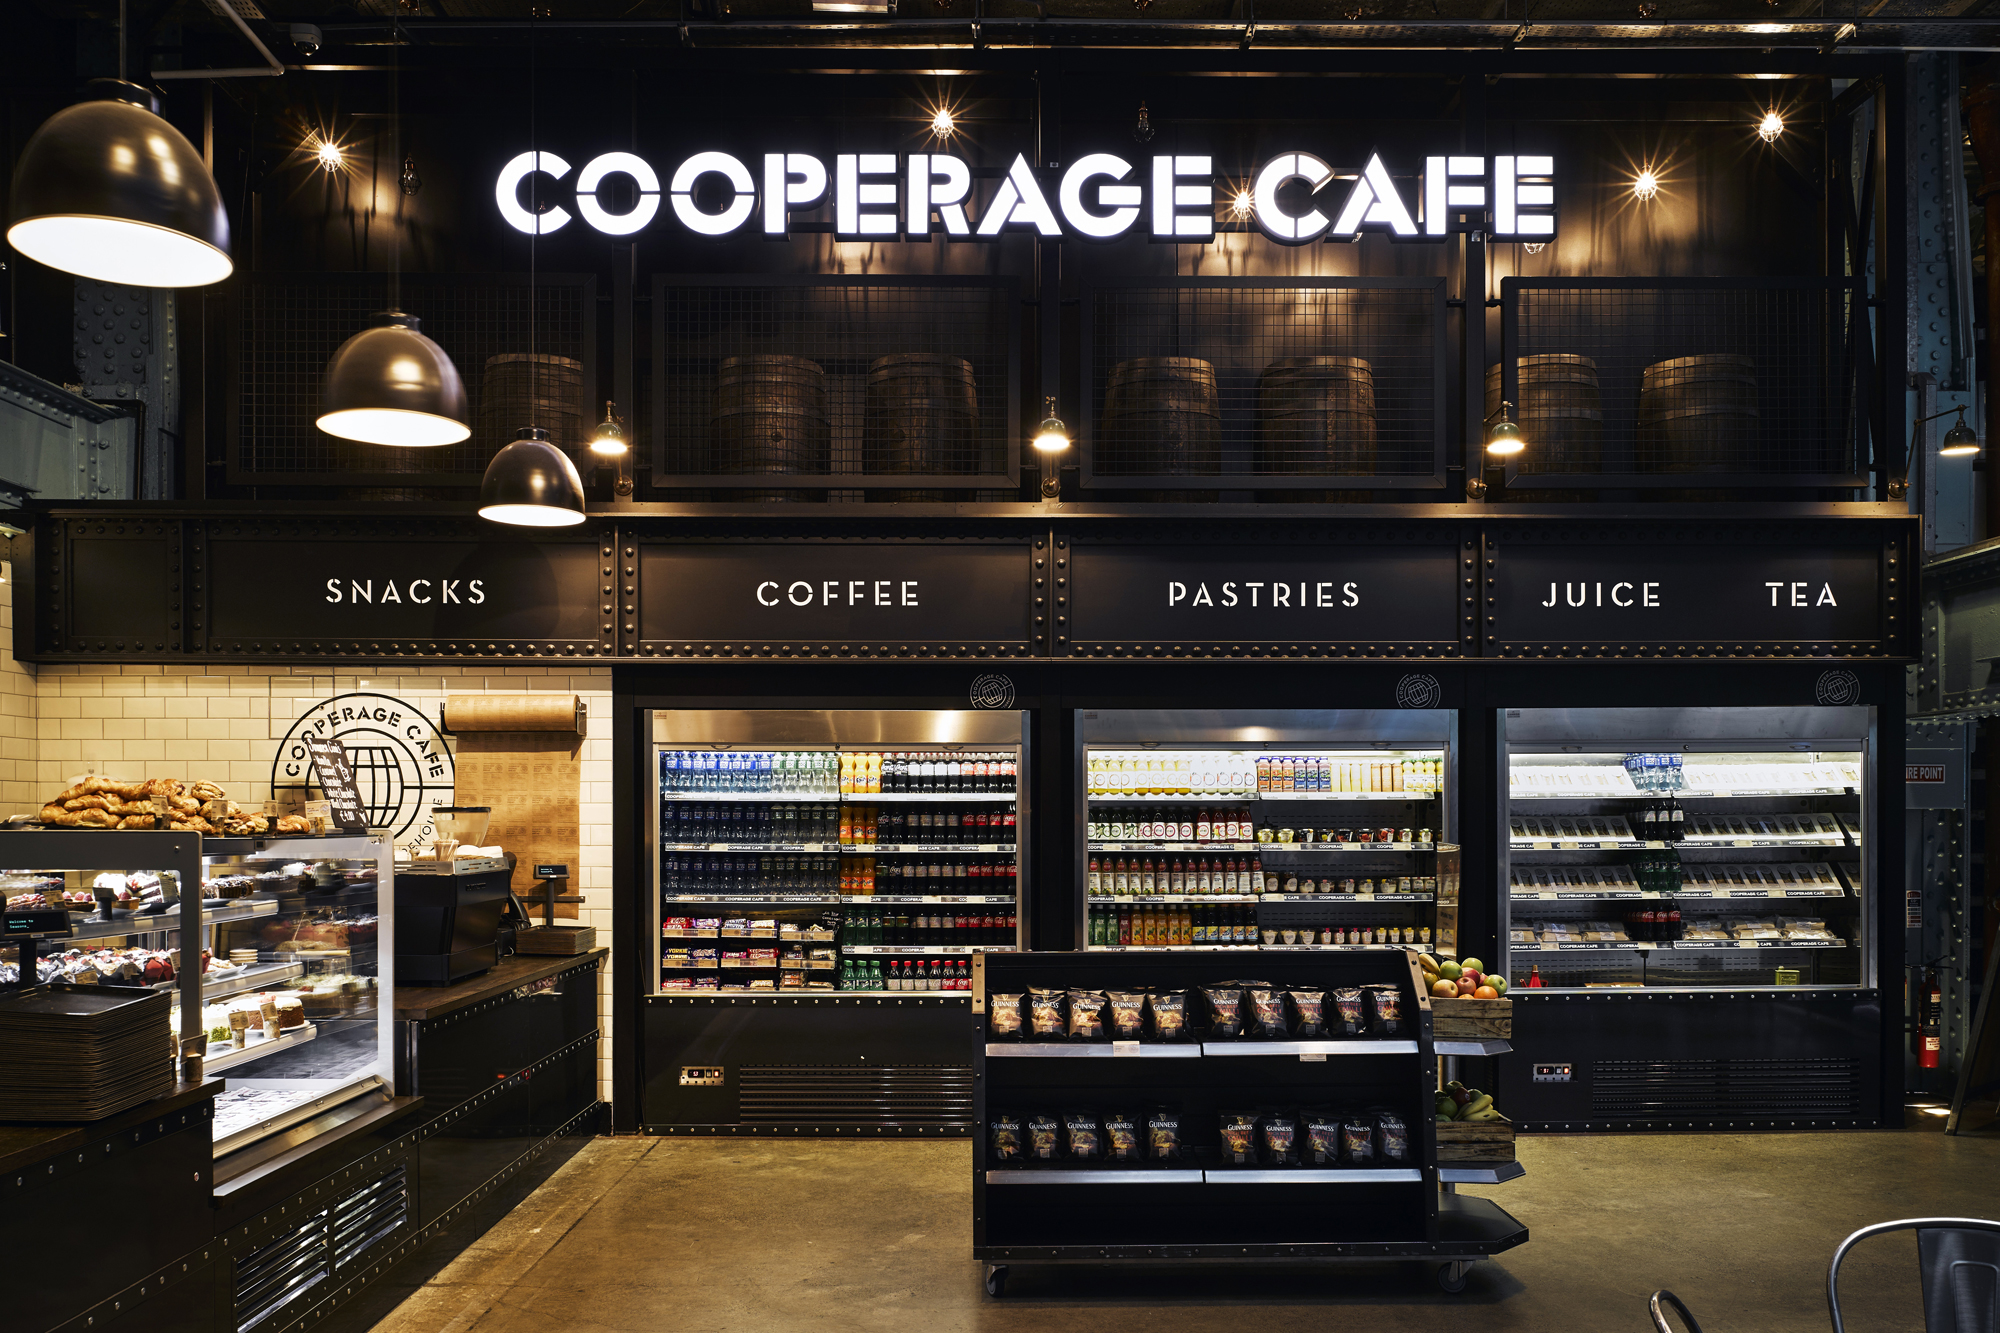 Cover image: Guinness Storehouse - The Cooperage